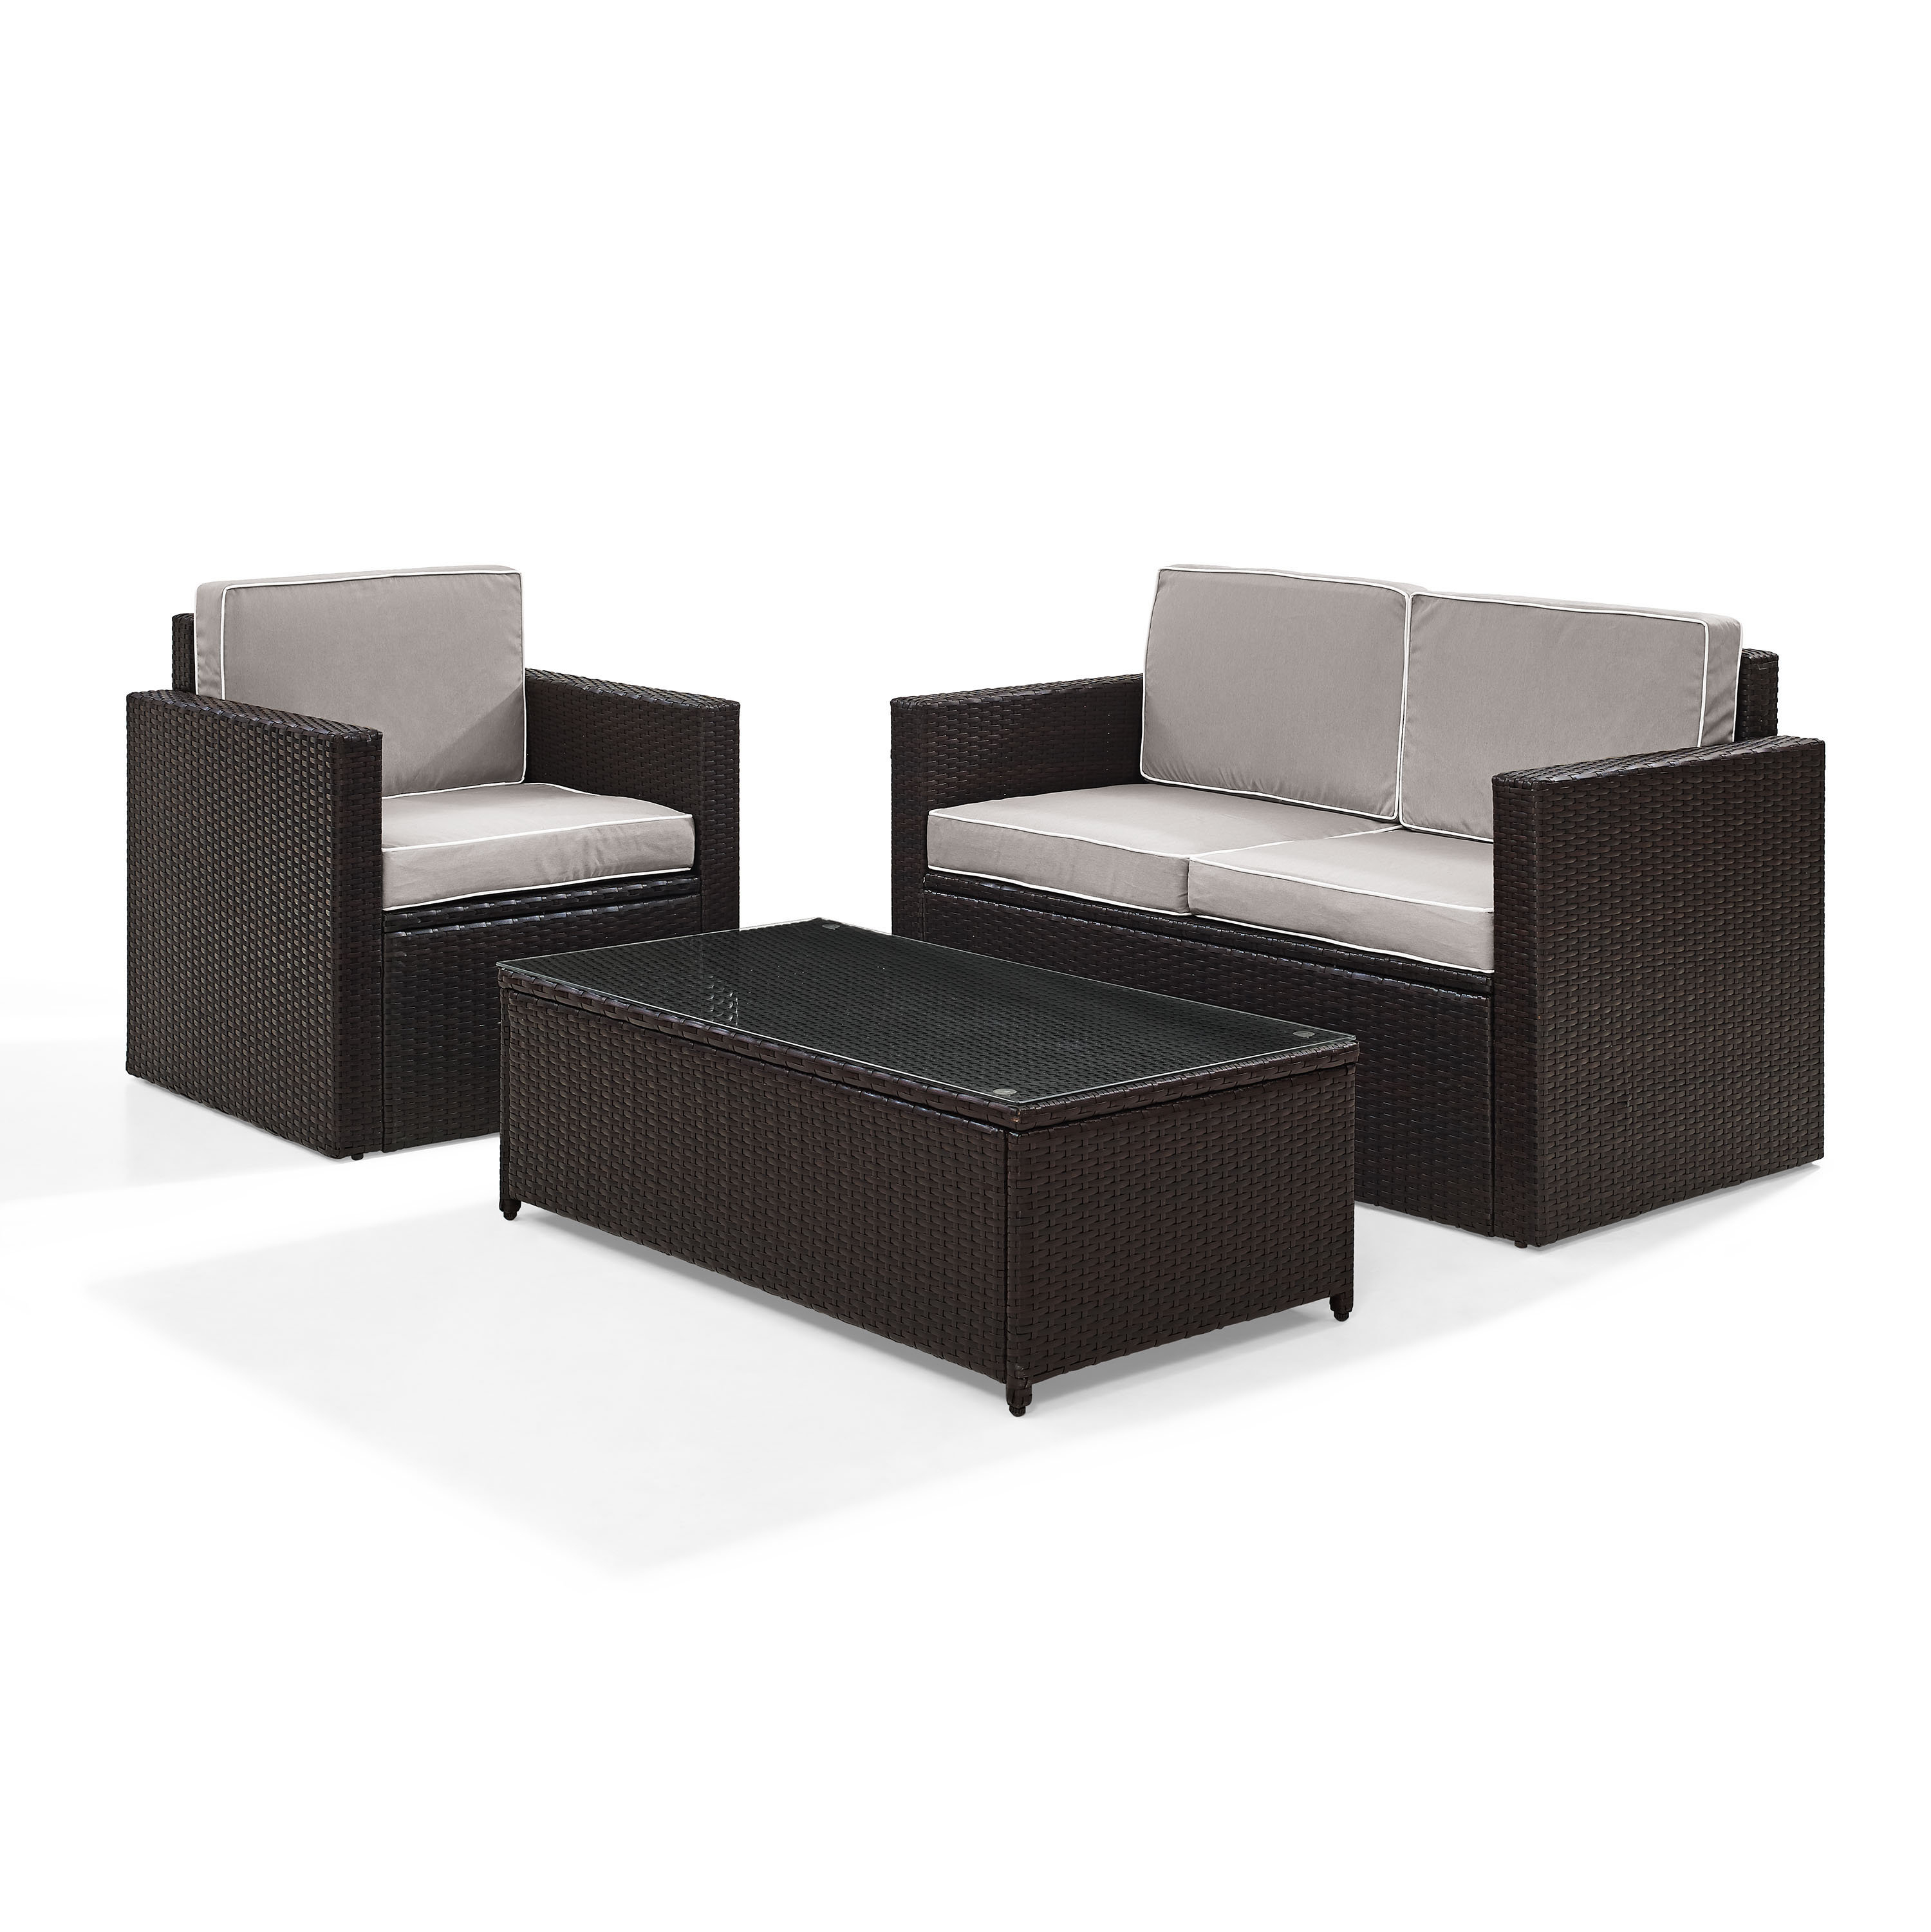 Most Recent Belton 3 Piece Rattan Sofa Set With Cushions Intended For Belton Patio Sofas With Cushions (View 21 of 25)